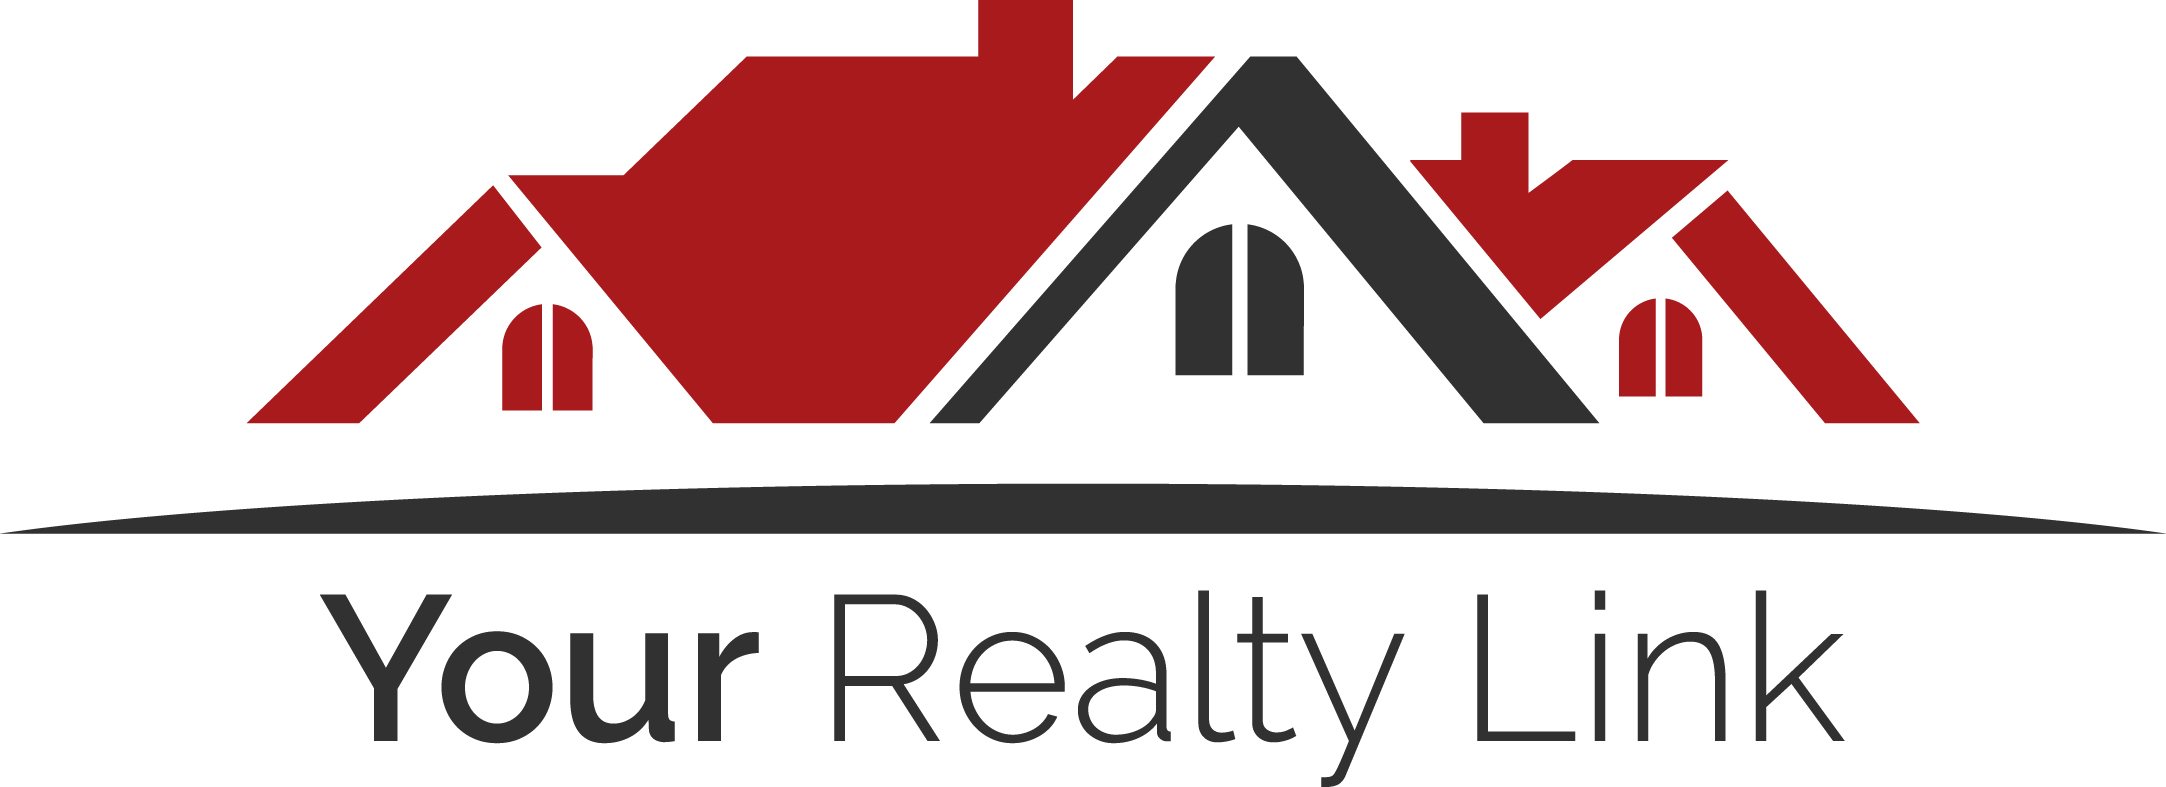 Your Realty Link